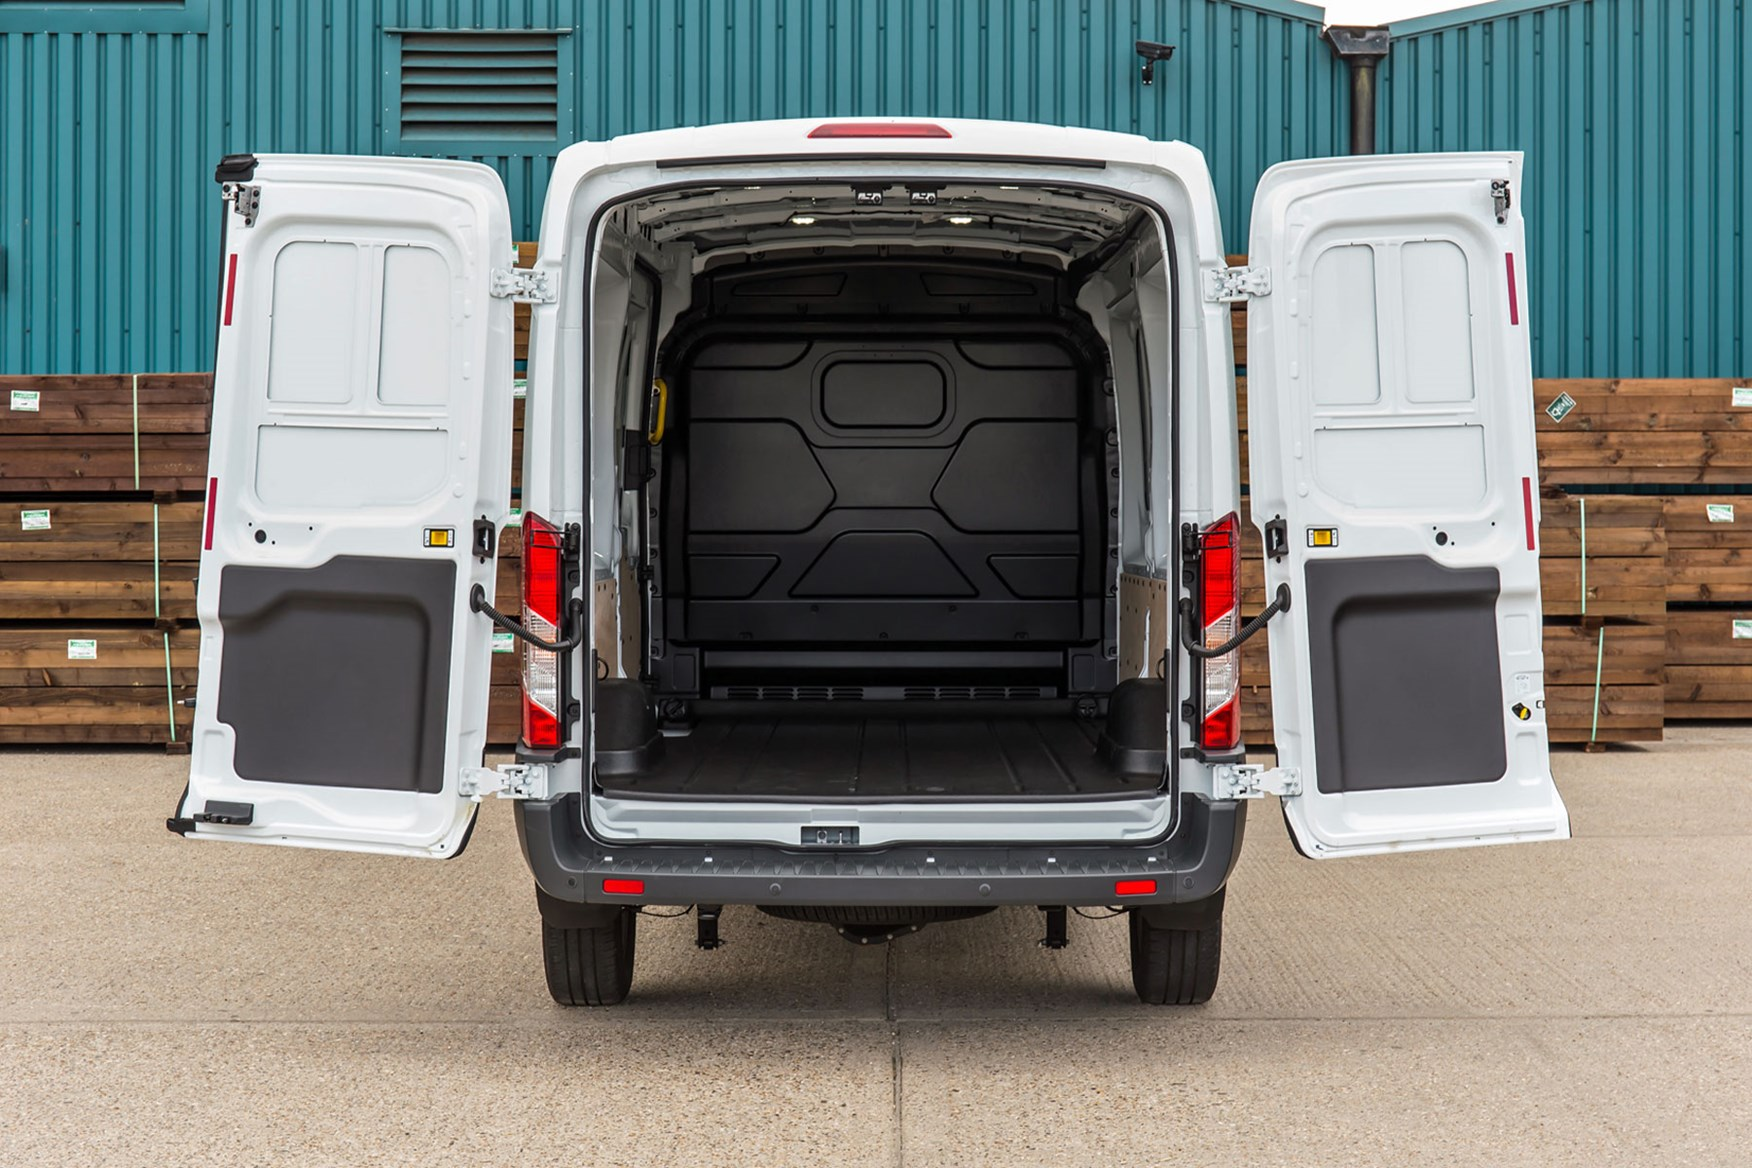 Ford Transit RWD Trend review - L3H2 load area